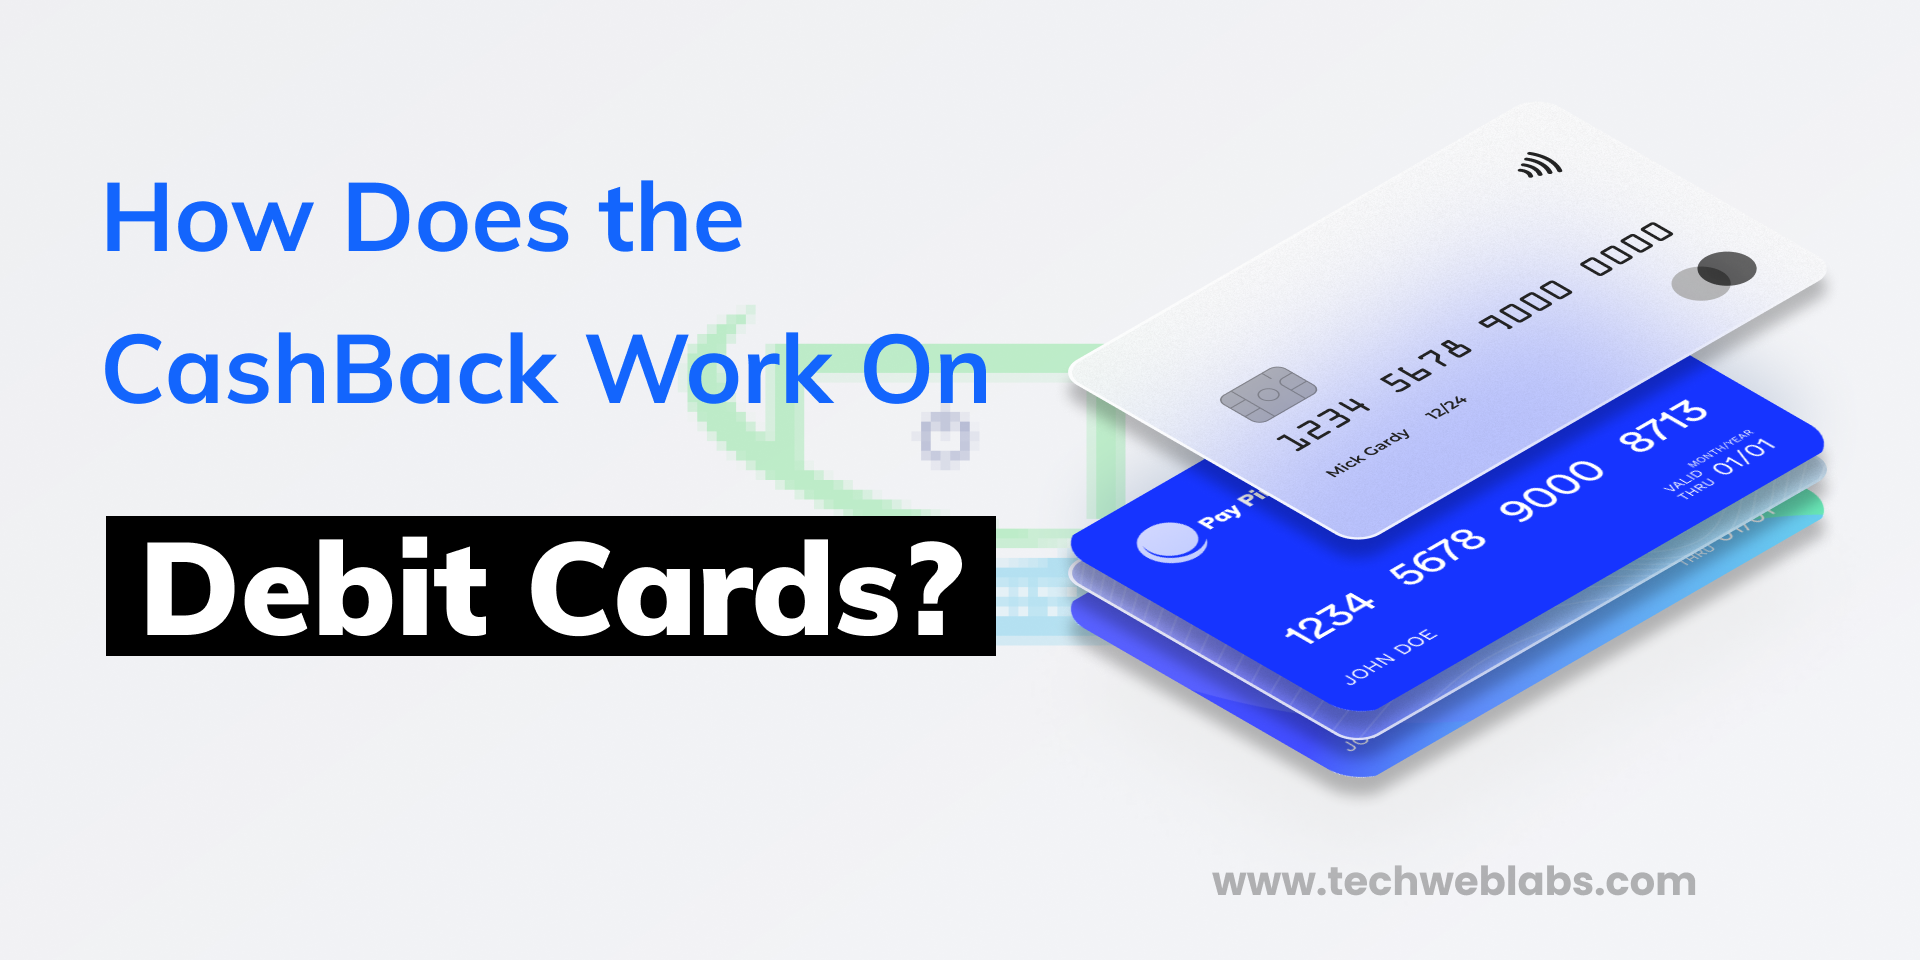 How Does the CashBack Work On Debit Cards